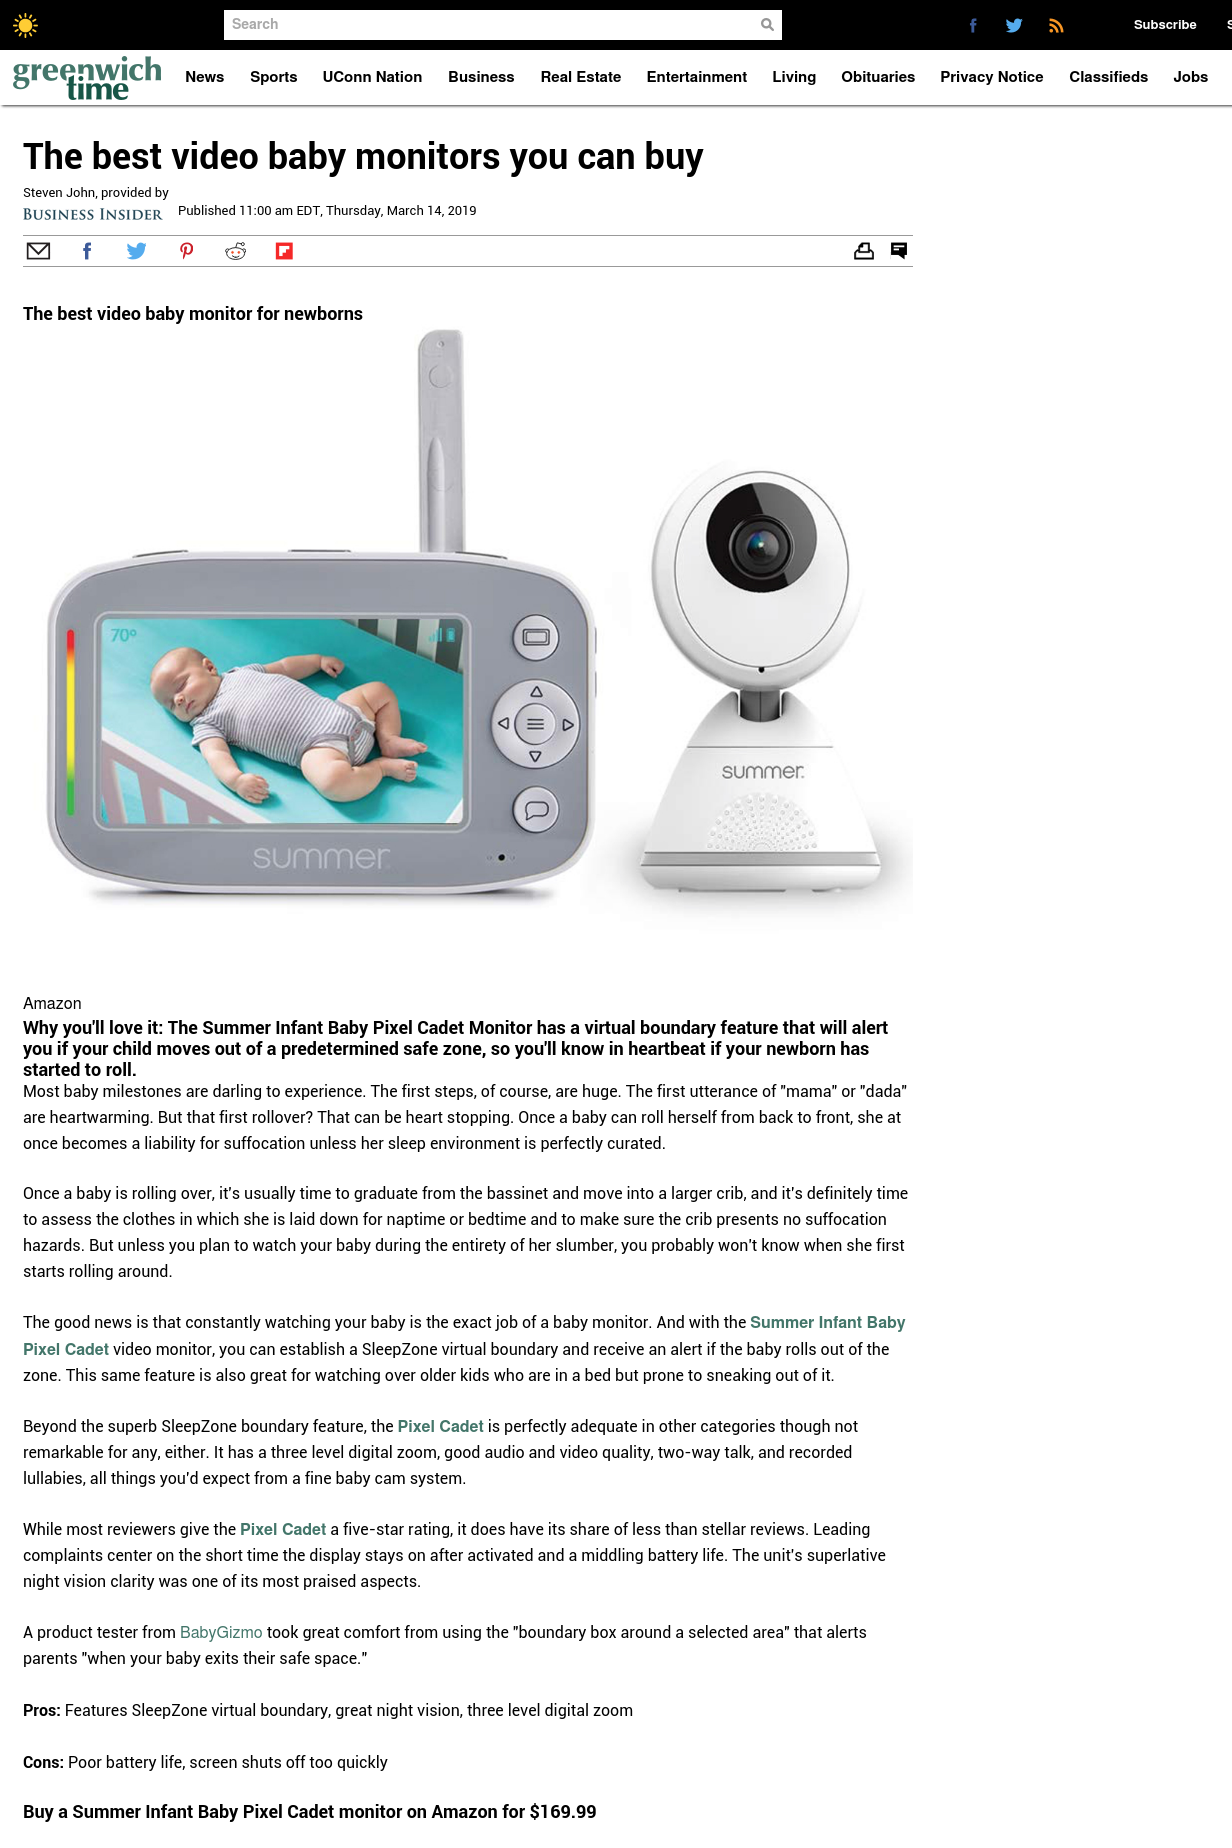 2019.03.14_Business Insider syndicated to Greenwich Time Online_Baby Pixel Cadet Monitor_cropped 2x3.png